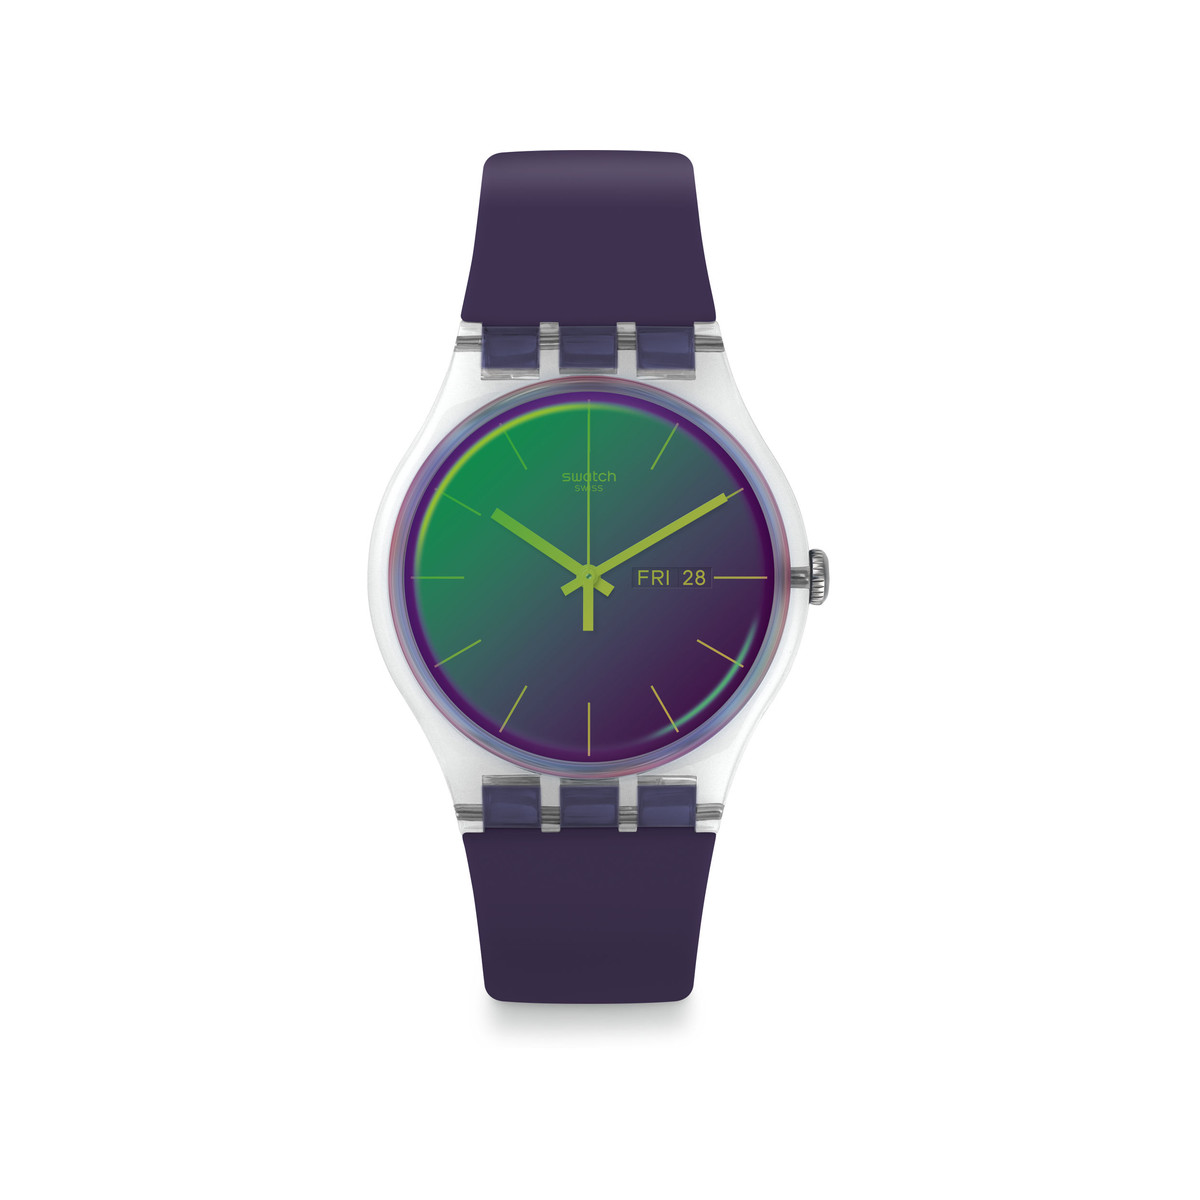 Montre Swatch Transformation plastique silicone - vue 1